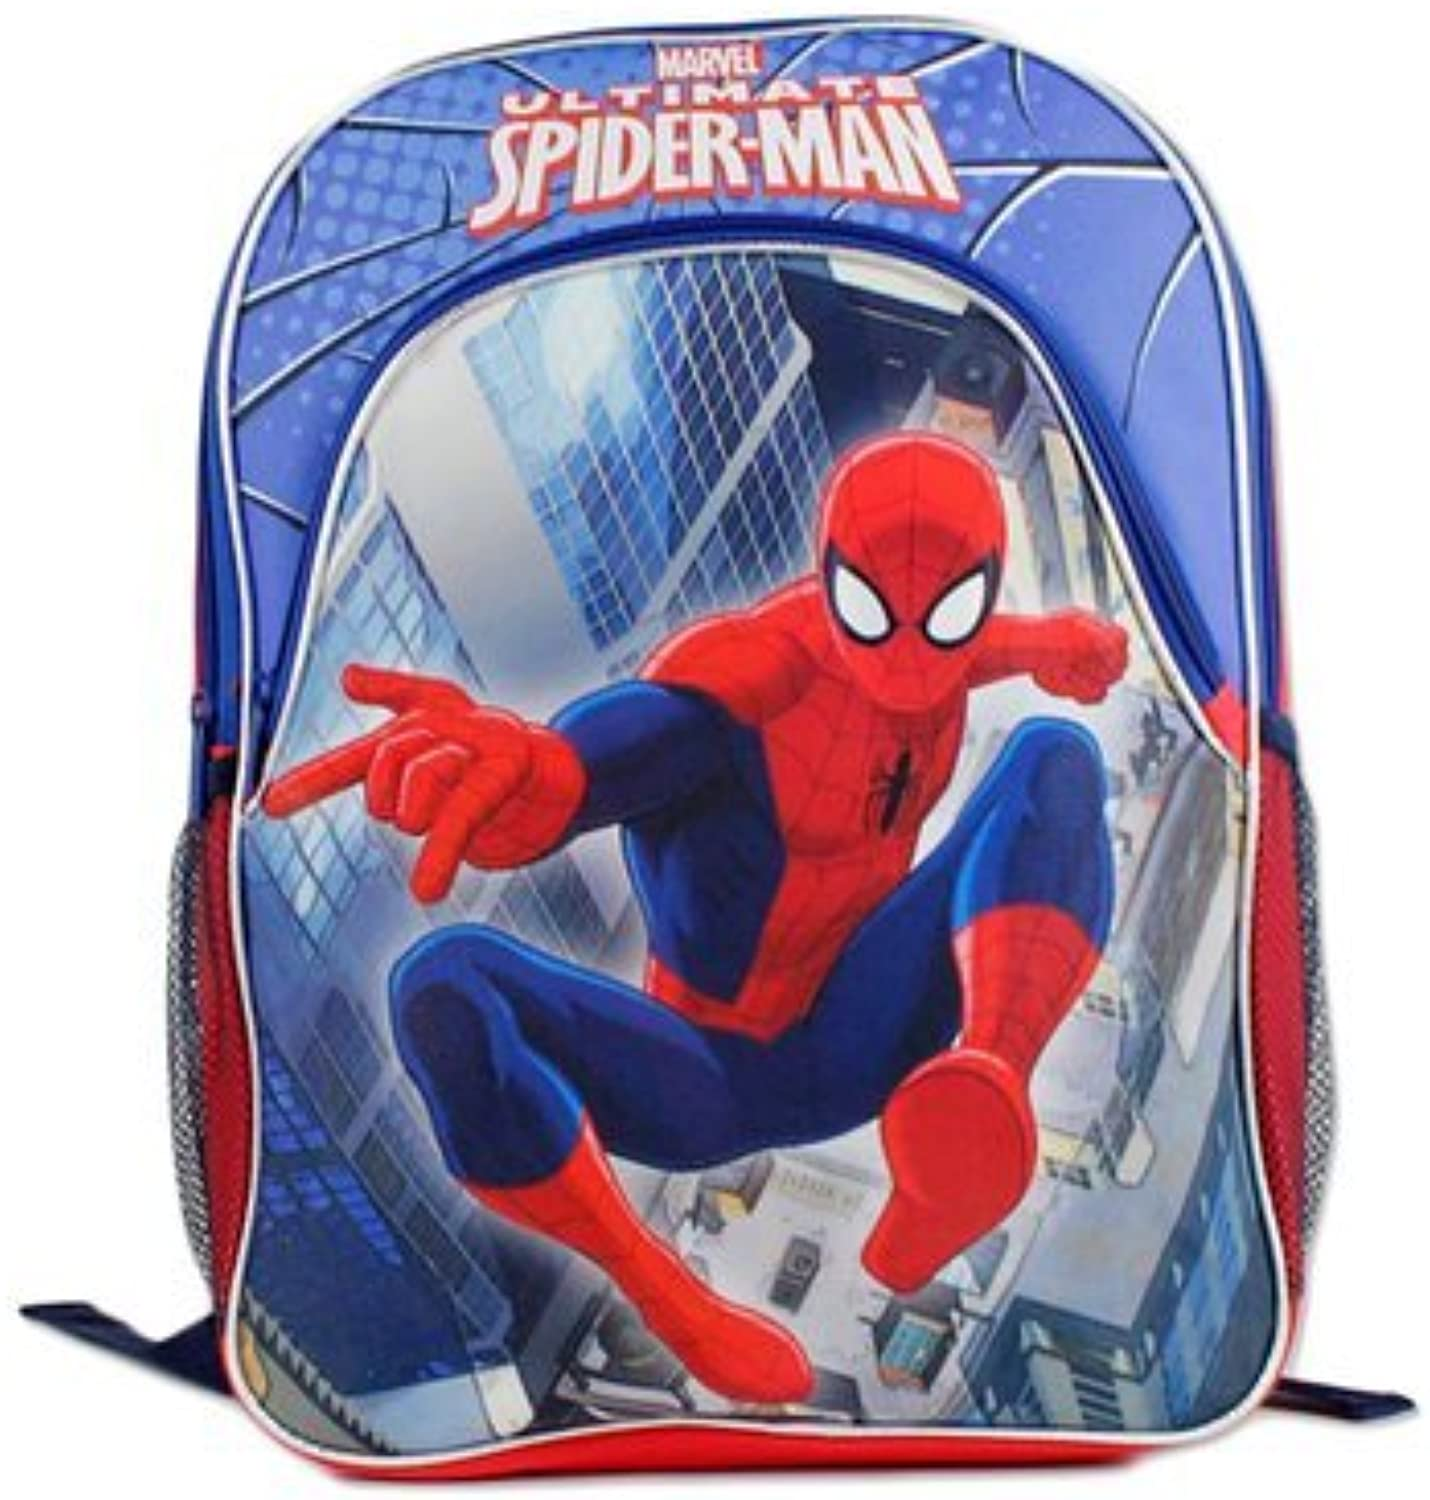 Backpack  Marvel  Spiderman bluee 16  Boys School Bag New PLSM